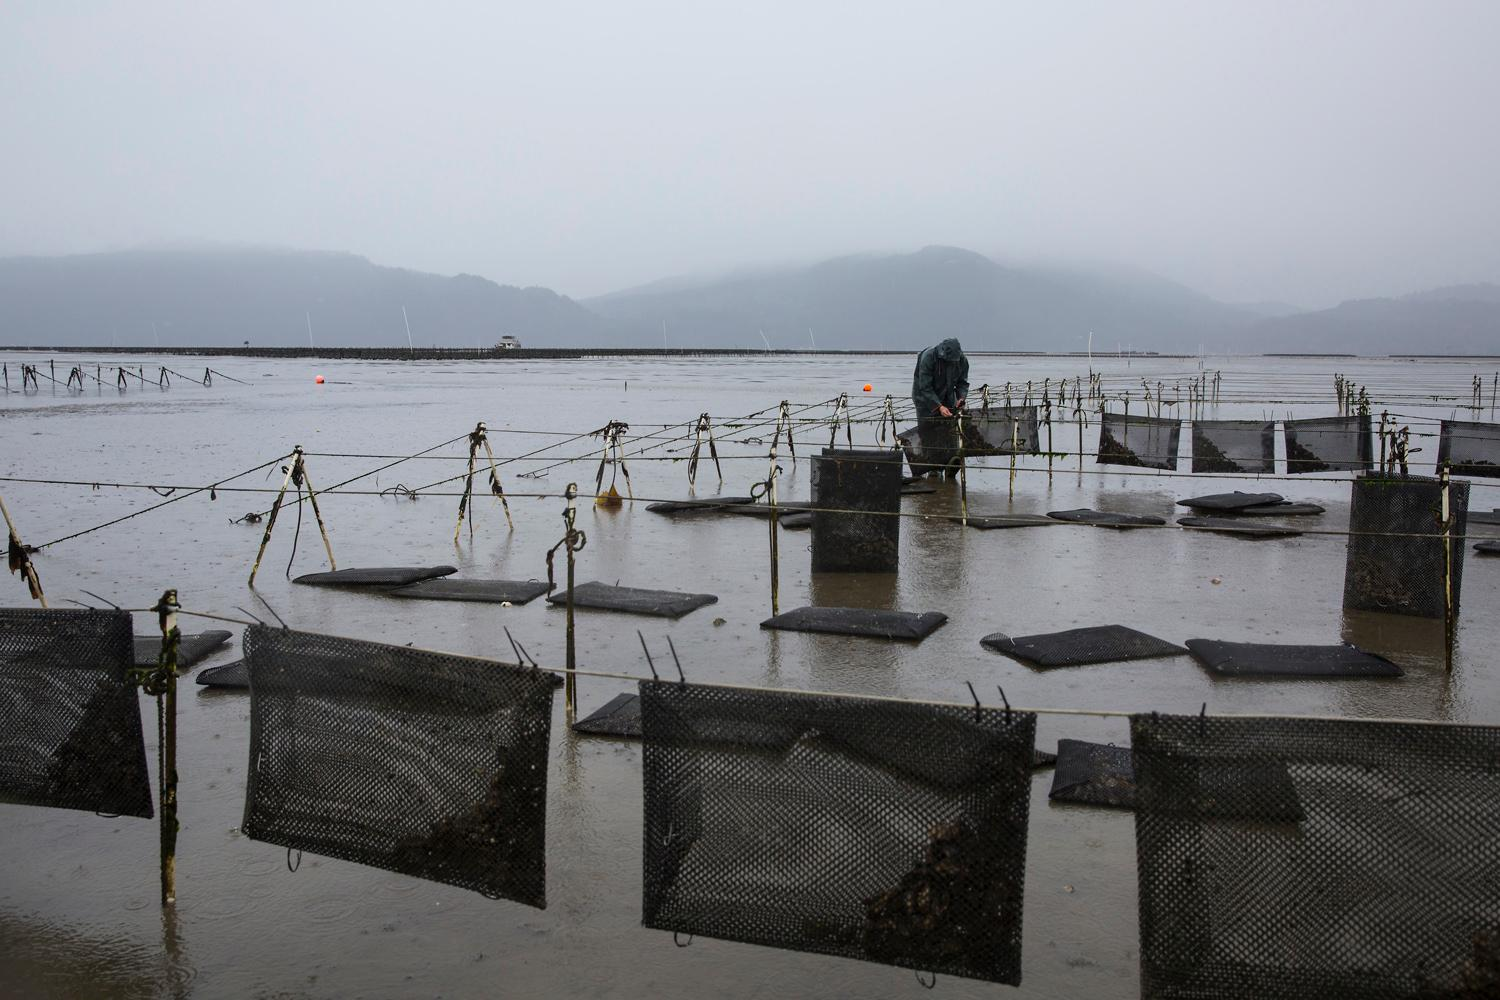 An employee works on securing oyster flip bags, a technique used to grow oysters that keep them safe and encourages growth by agitating the oysters as the tides change. (Sy Bean / Seattle Refined)